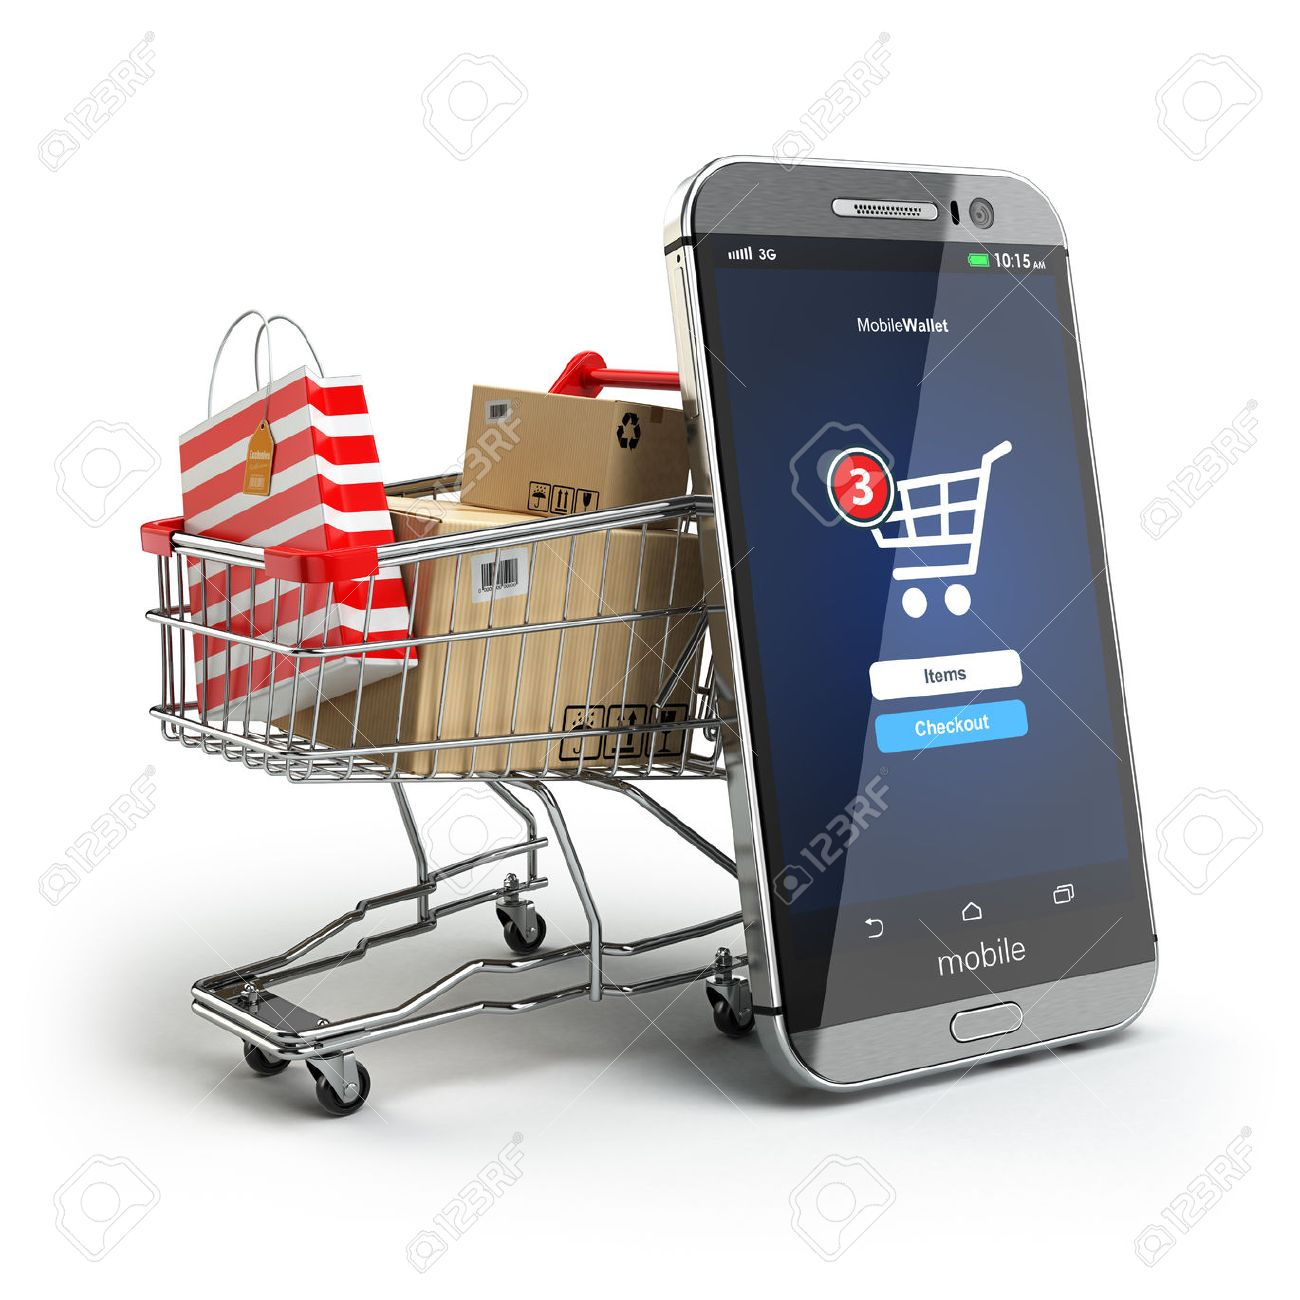 e8069c09a Online shopping concept. Mobile phone or smartphone with cart and boxes and  bag. 3d